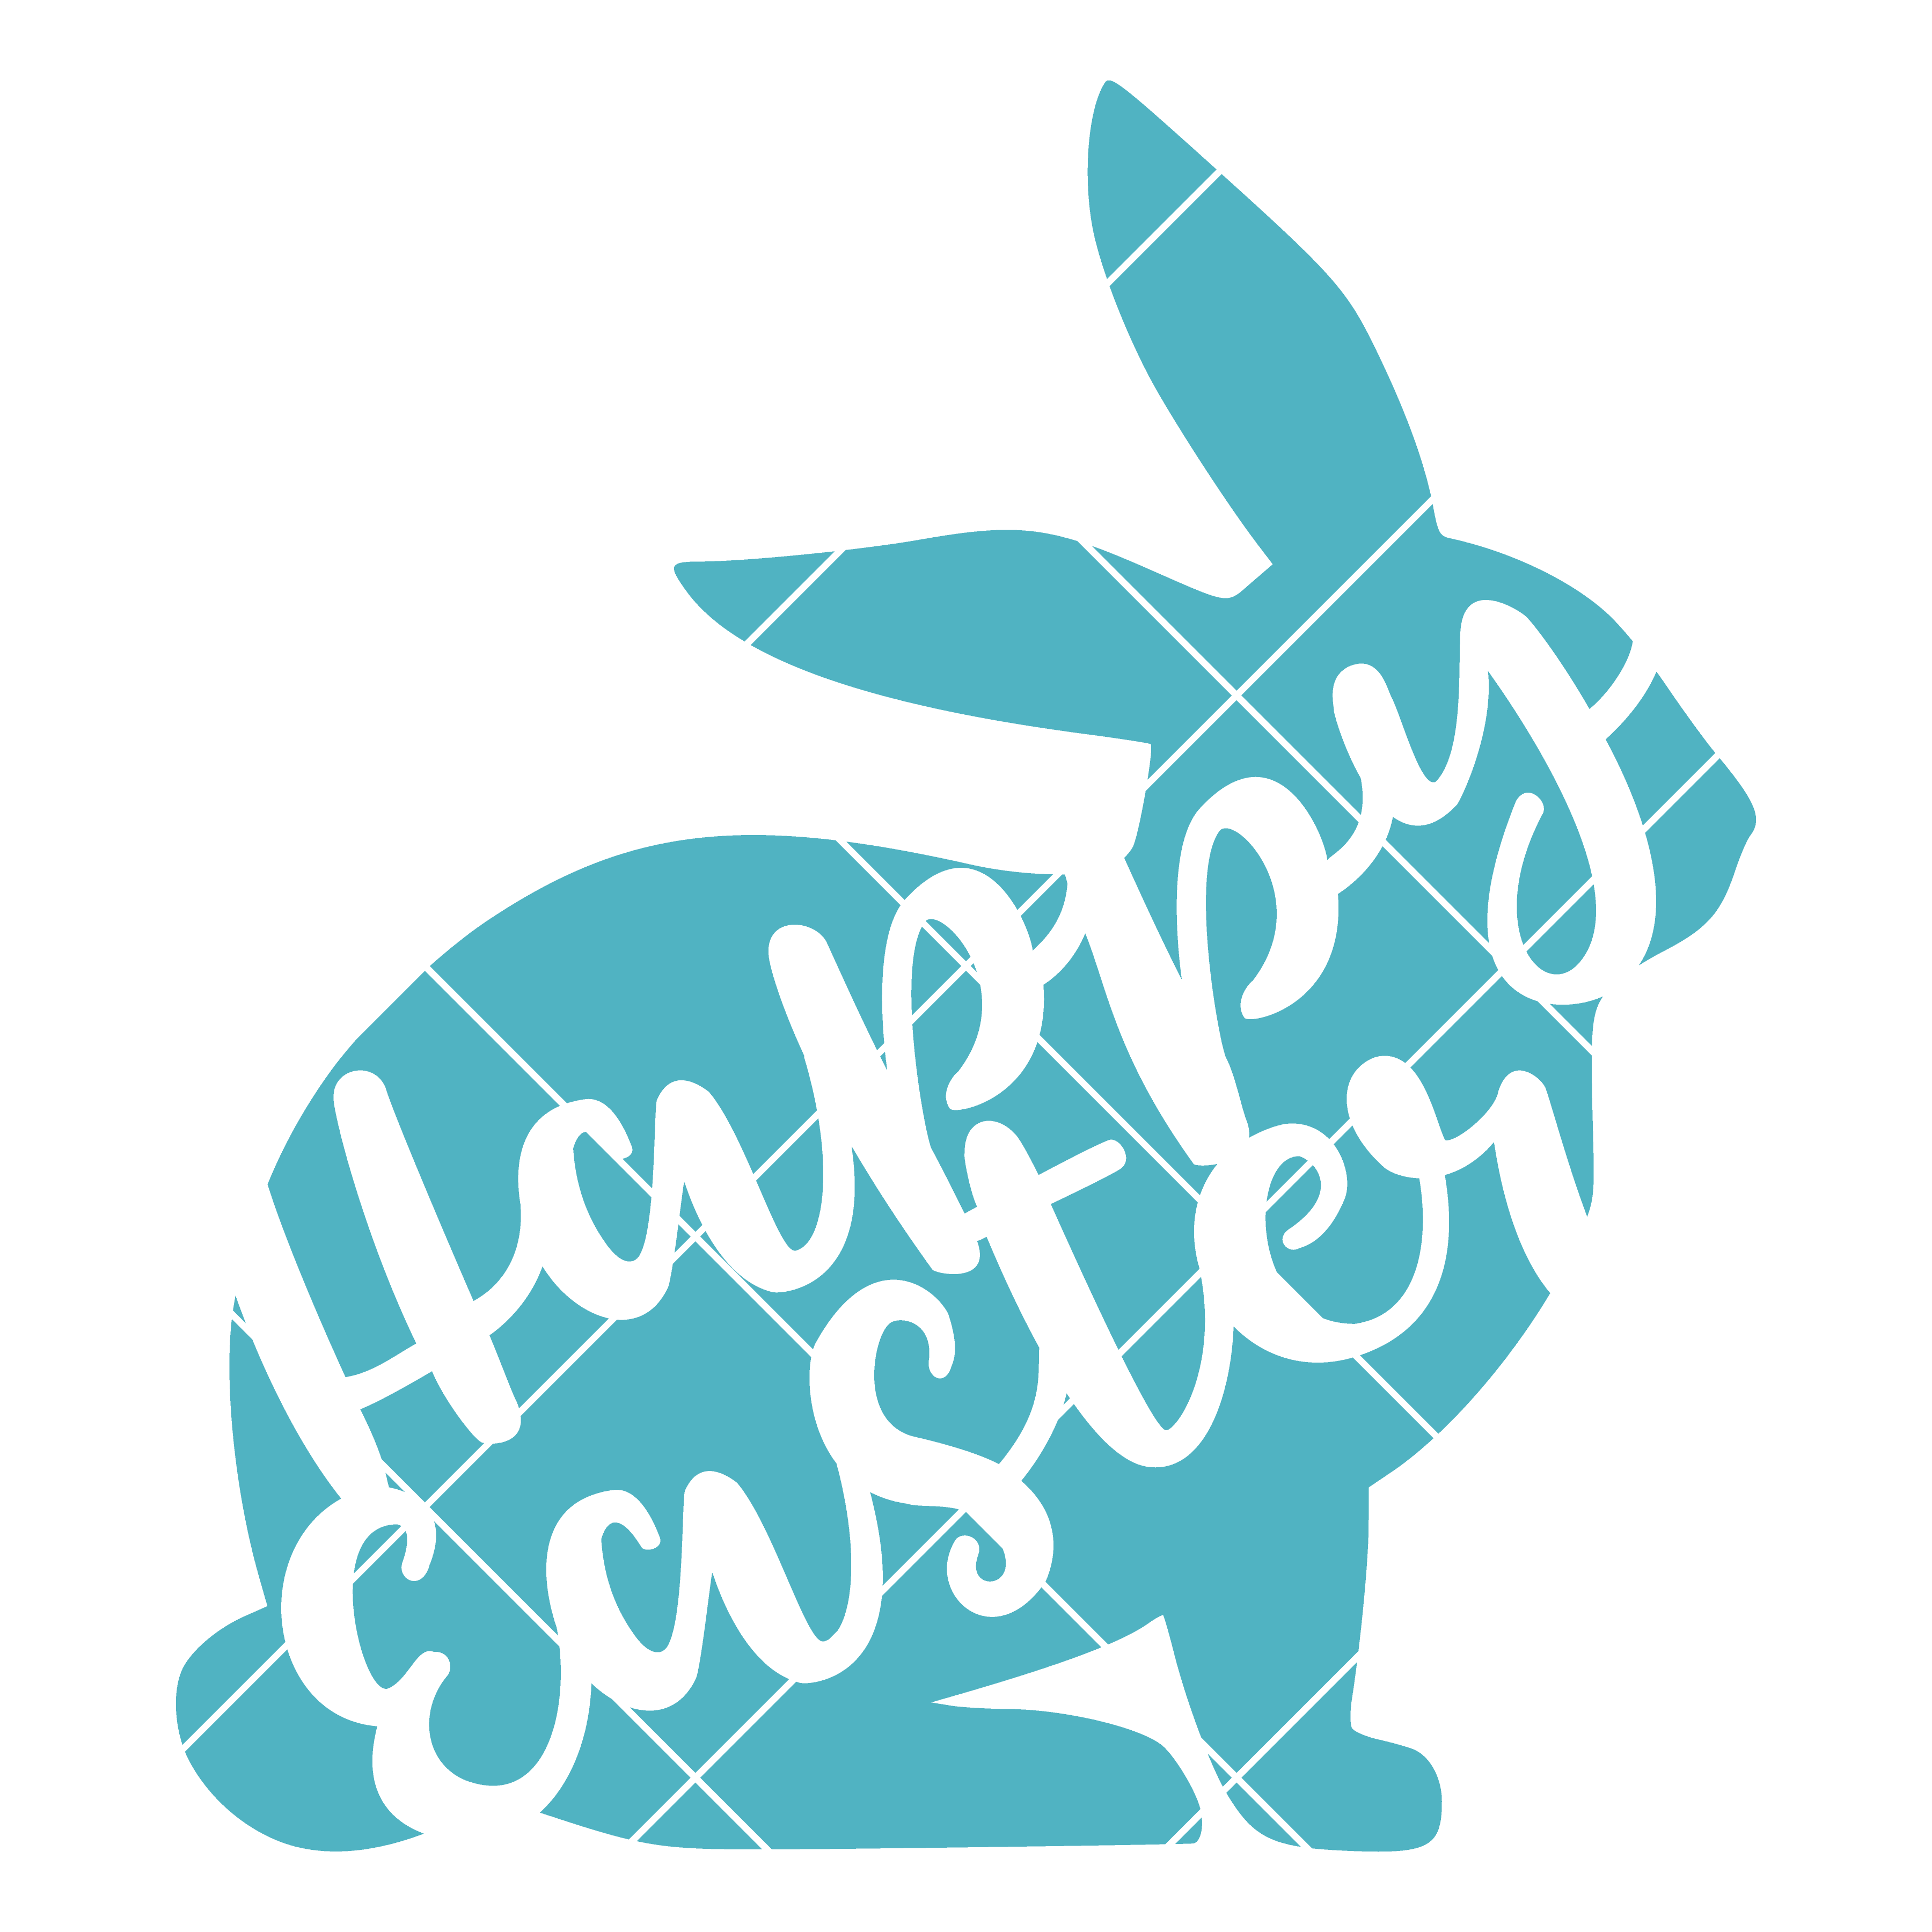 Download Happy Easter SVG | Free silhouette files, Easter t shirts ...